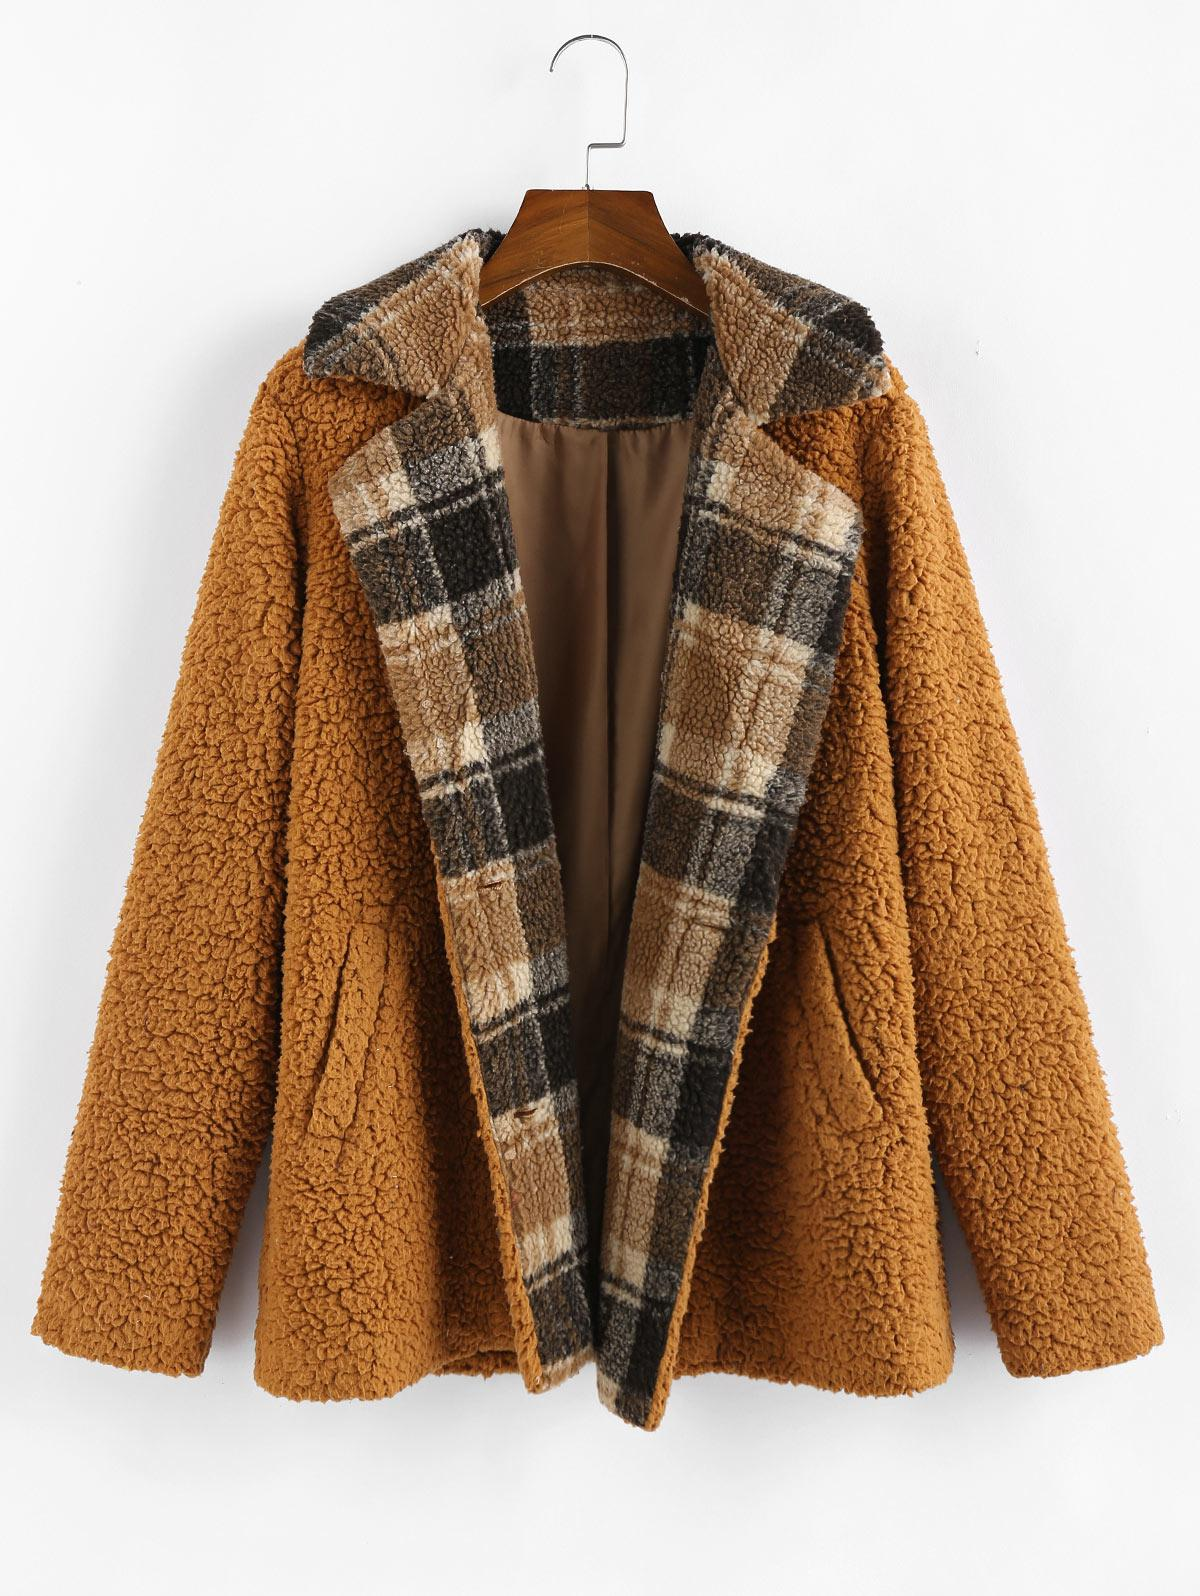 ZAFUL Plaid Faux Shearling Fluffy Pocket Teddy Coat